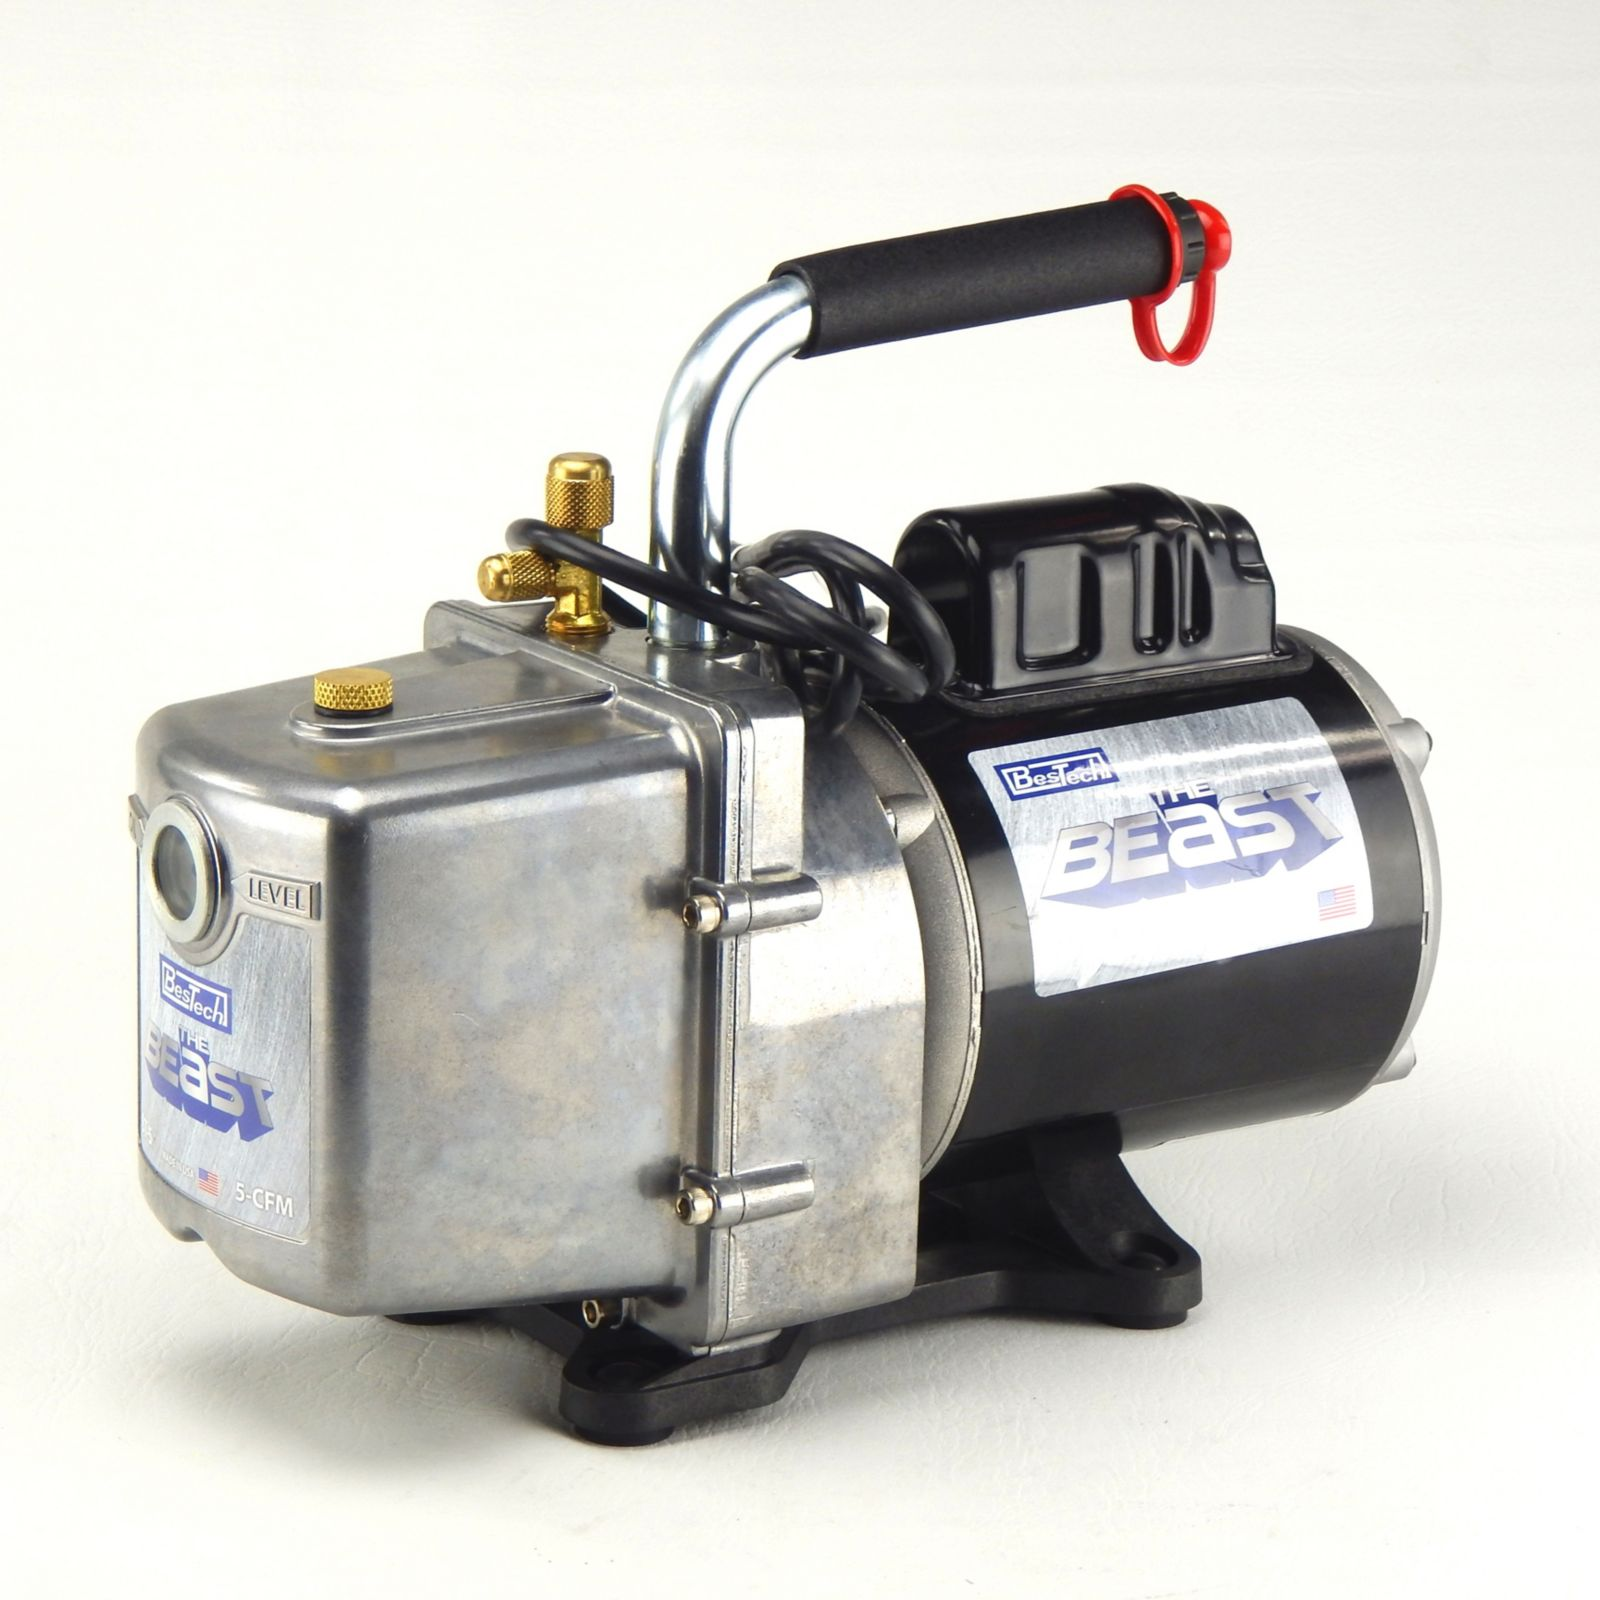 THE BEAST 2 Stage Vacuum Pump - 5cfm